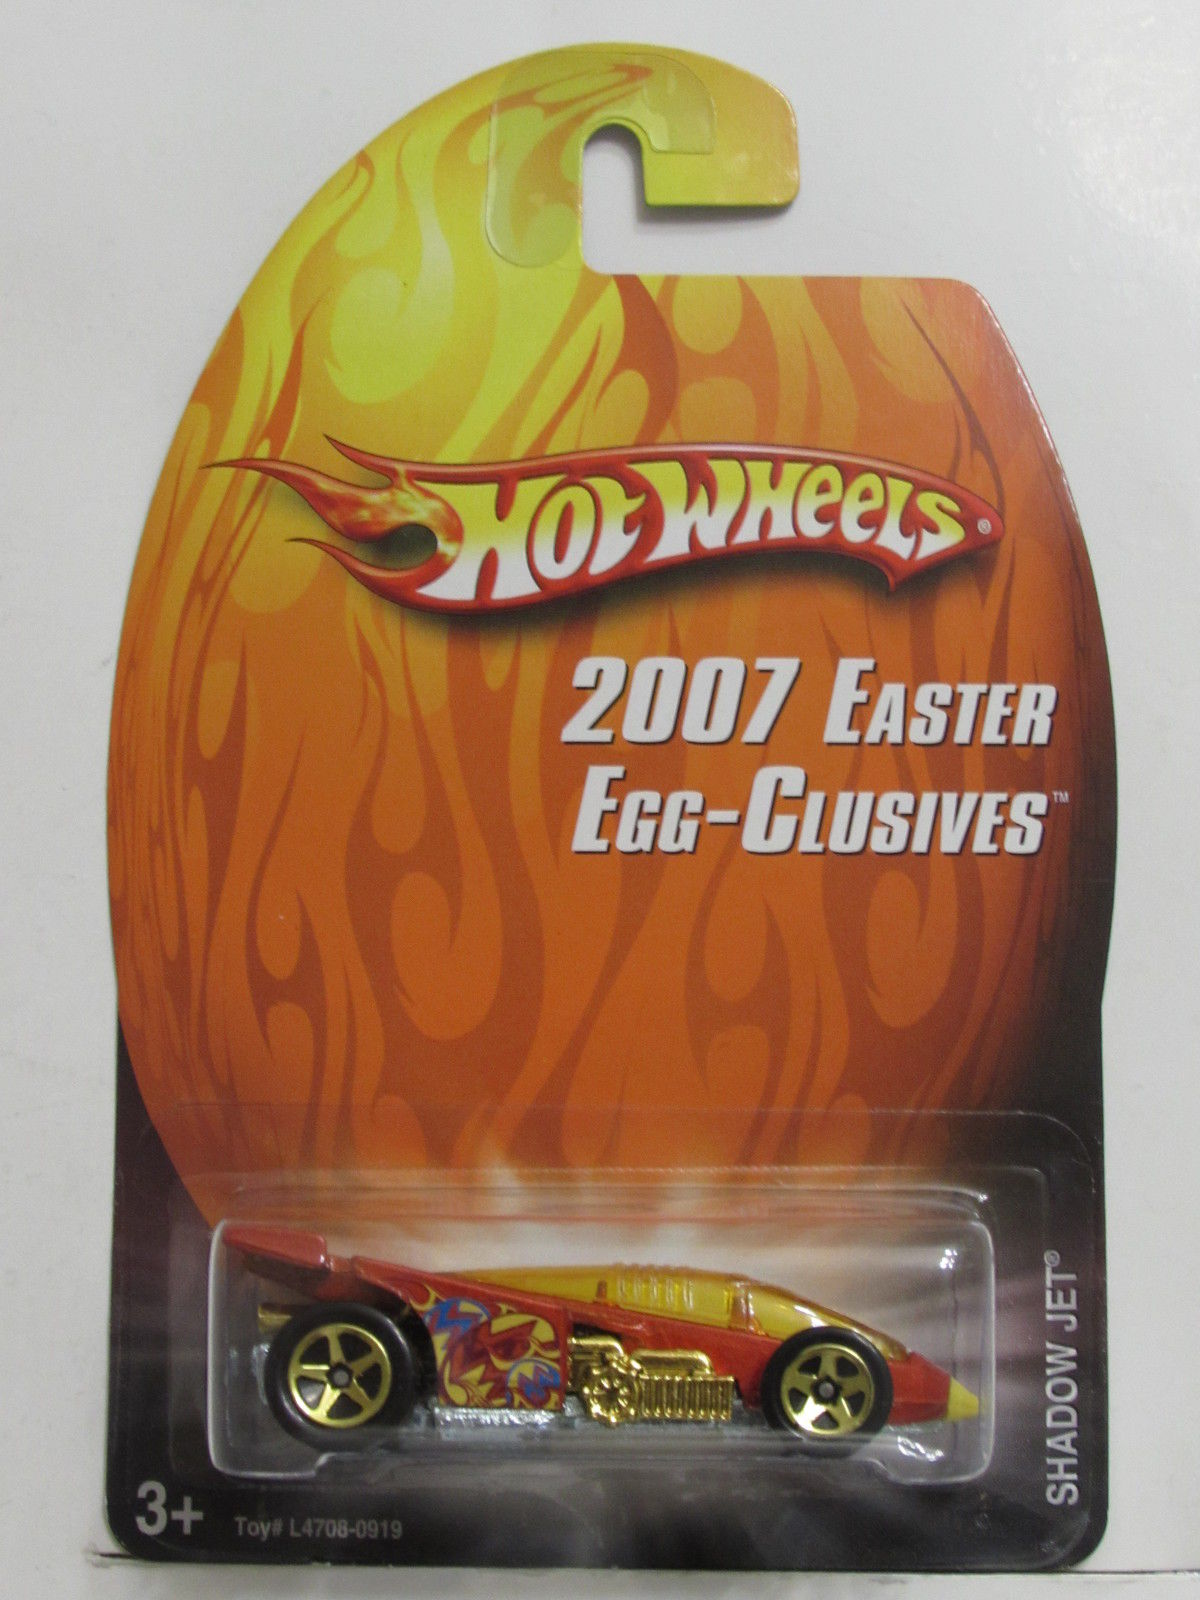 HOT WHEELS 2007 EASTER EGG-CLUSIVES SHADOW JET E+